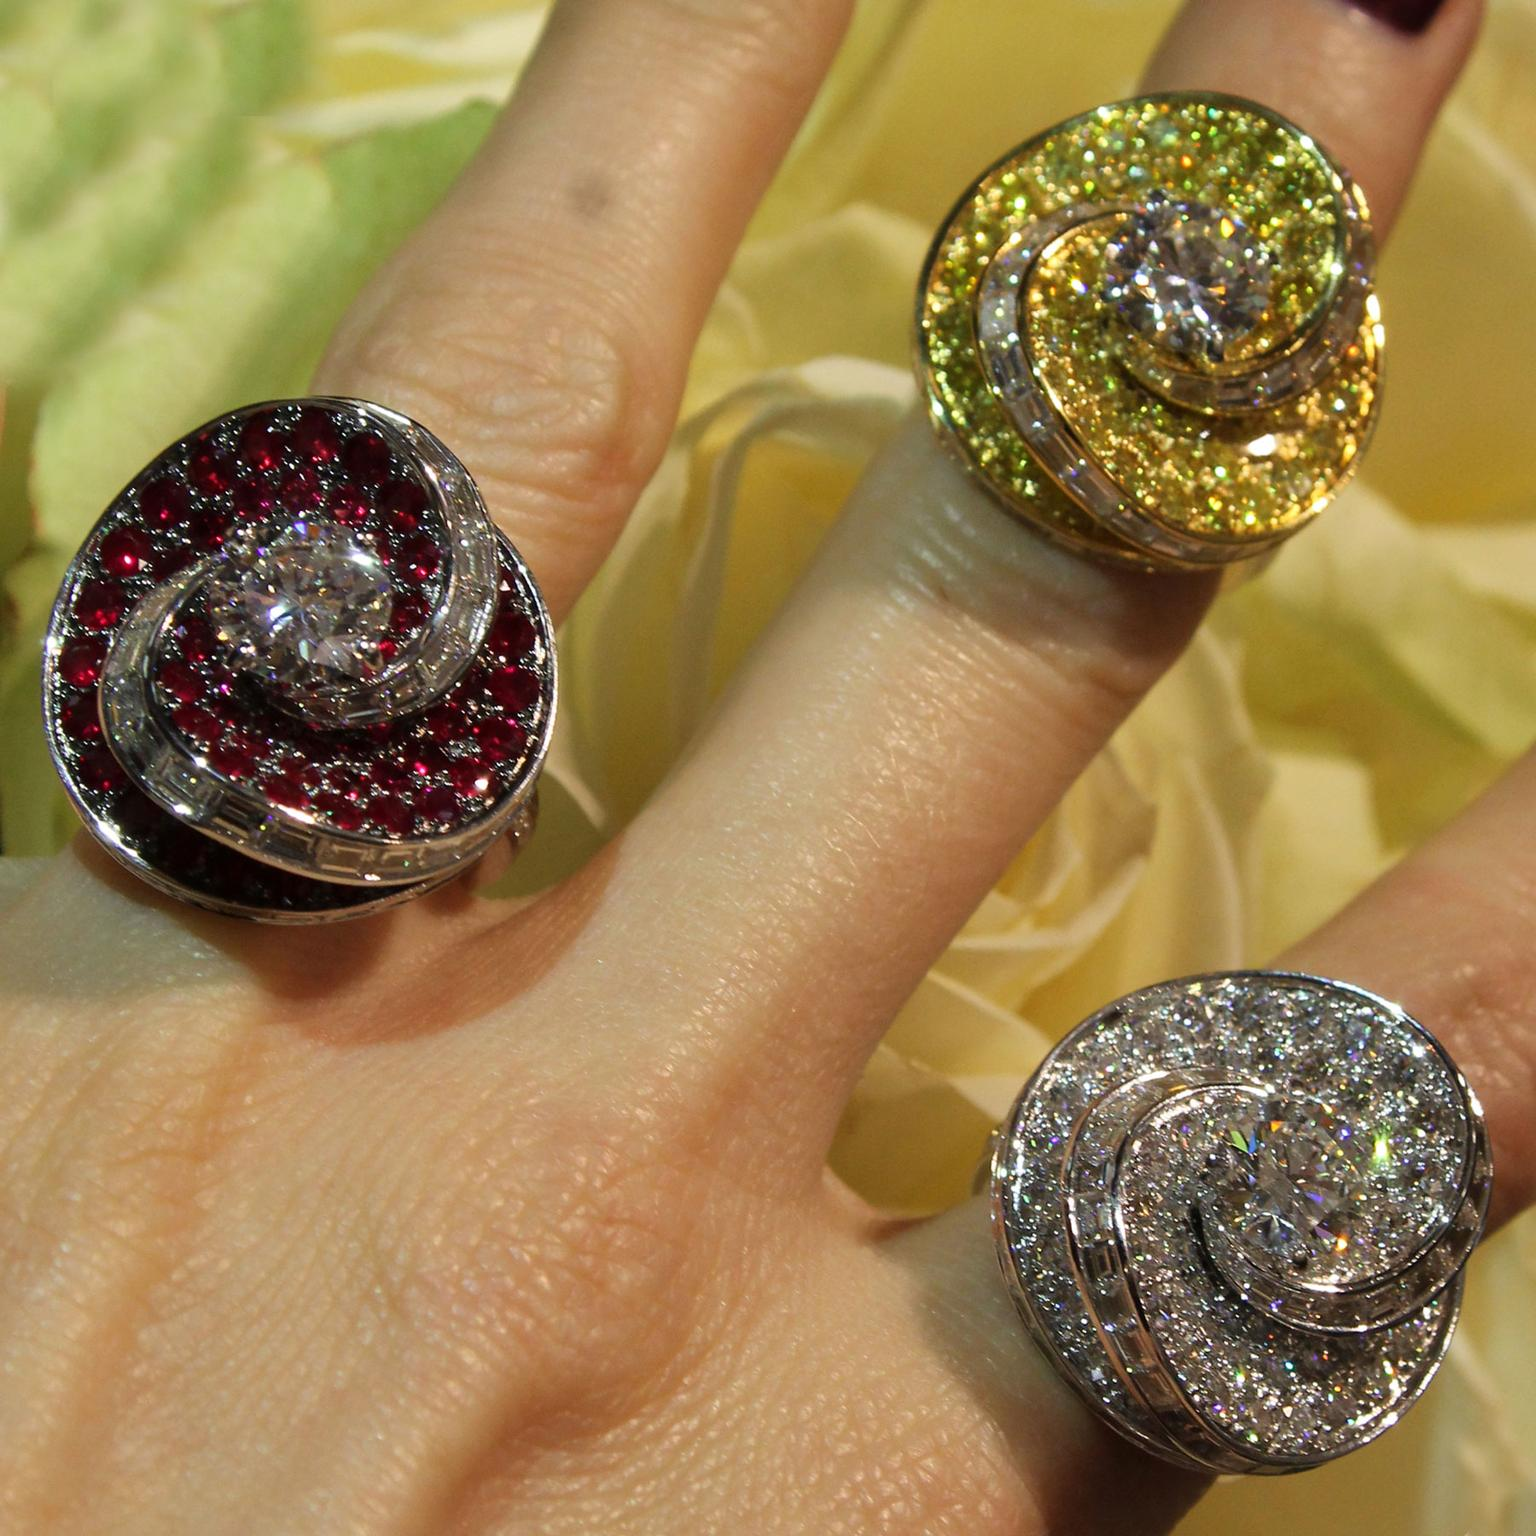 Graff Helter Skelter rings